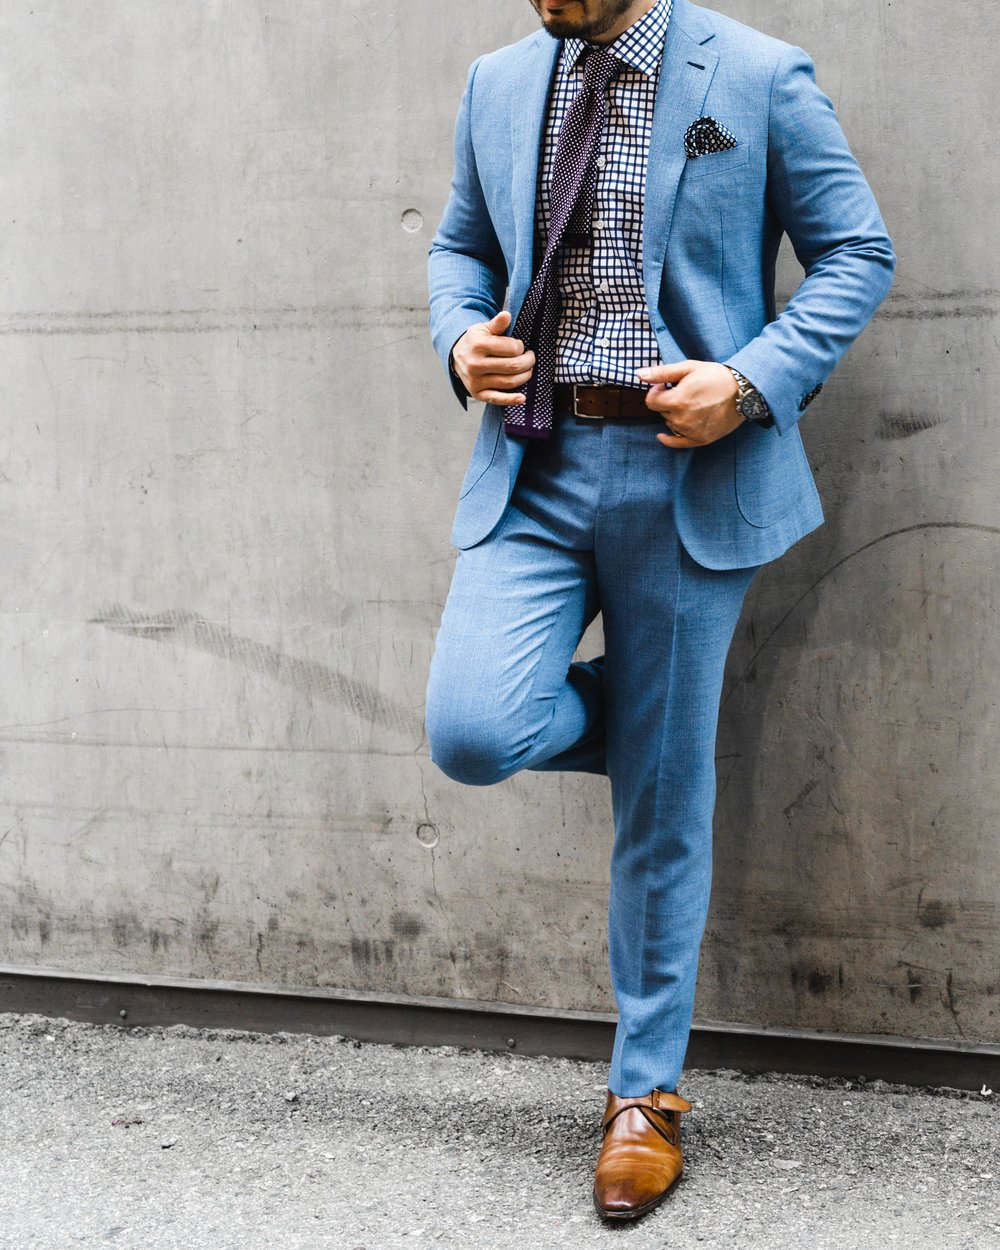 Custom-tailored-light-blue-suit.jpg